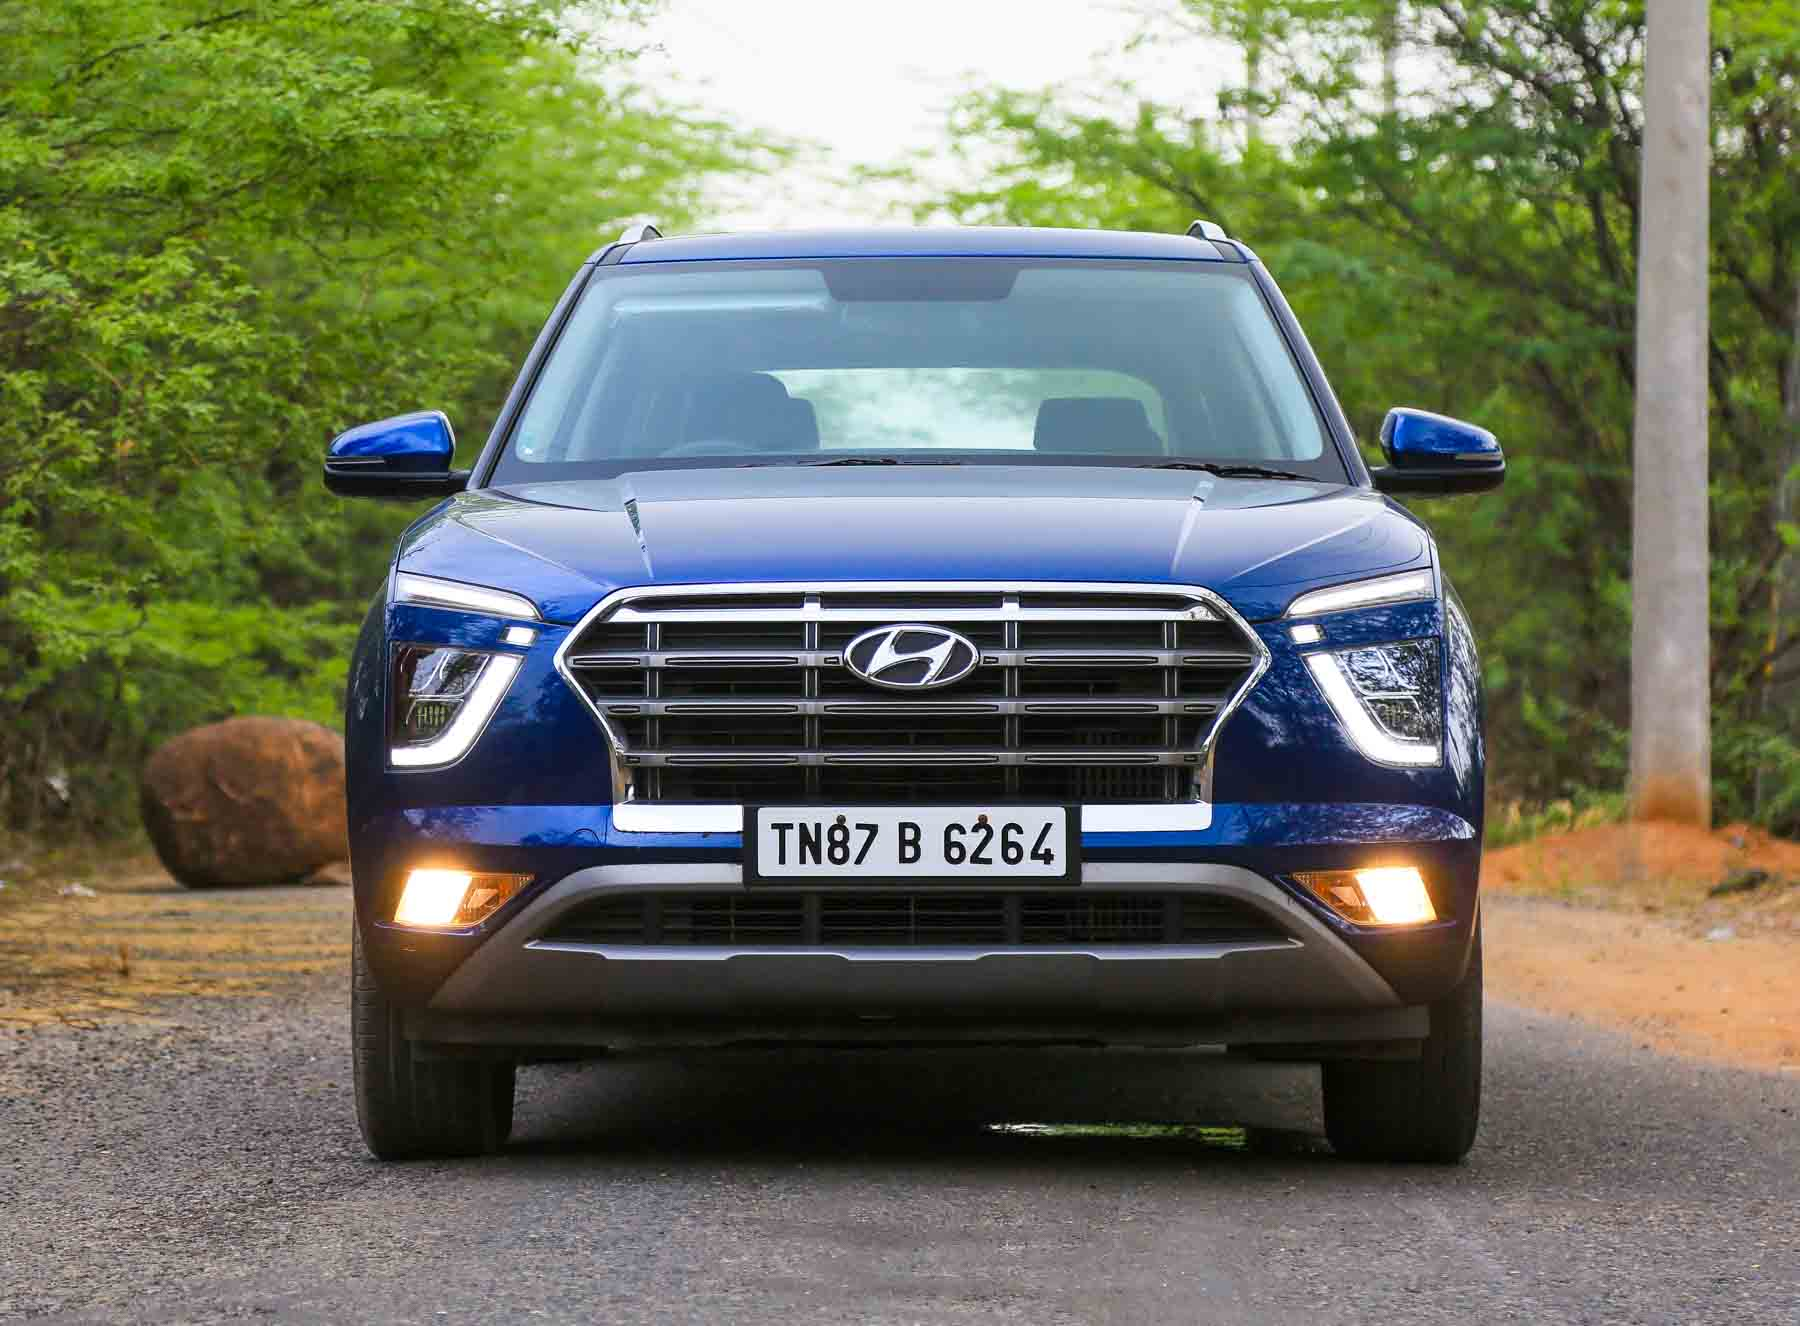 Top 7 Most Popular New Car Launches Of 2020 Creta I20 Altroz To Thar